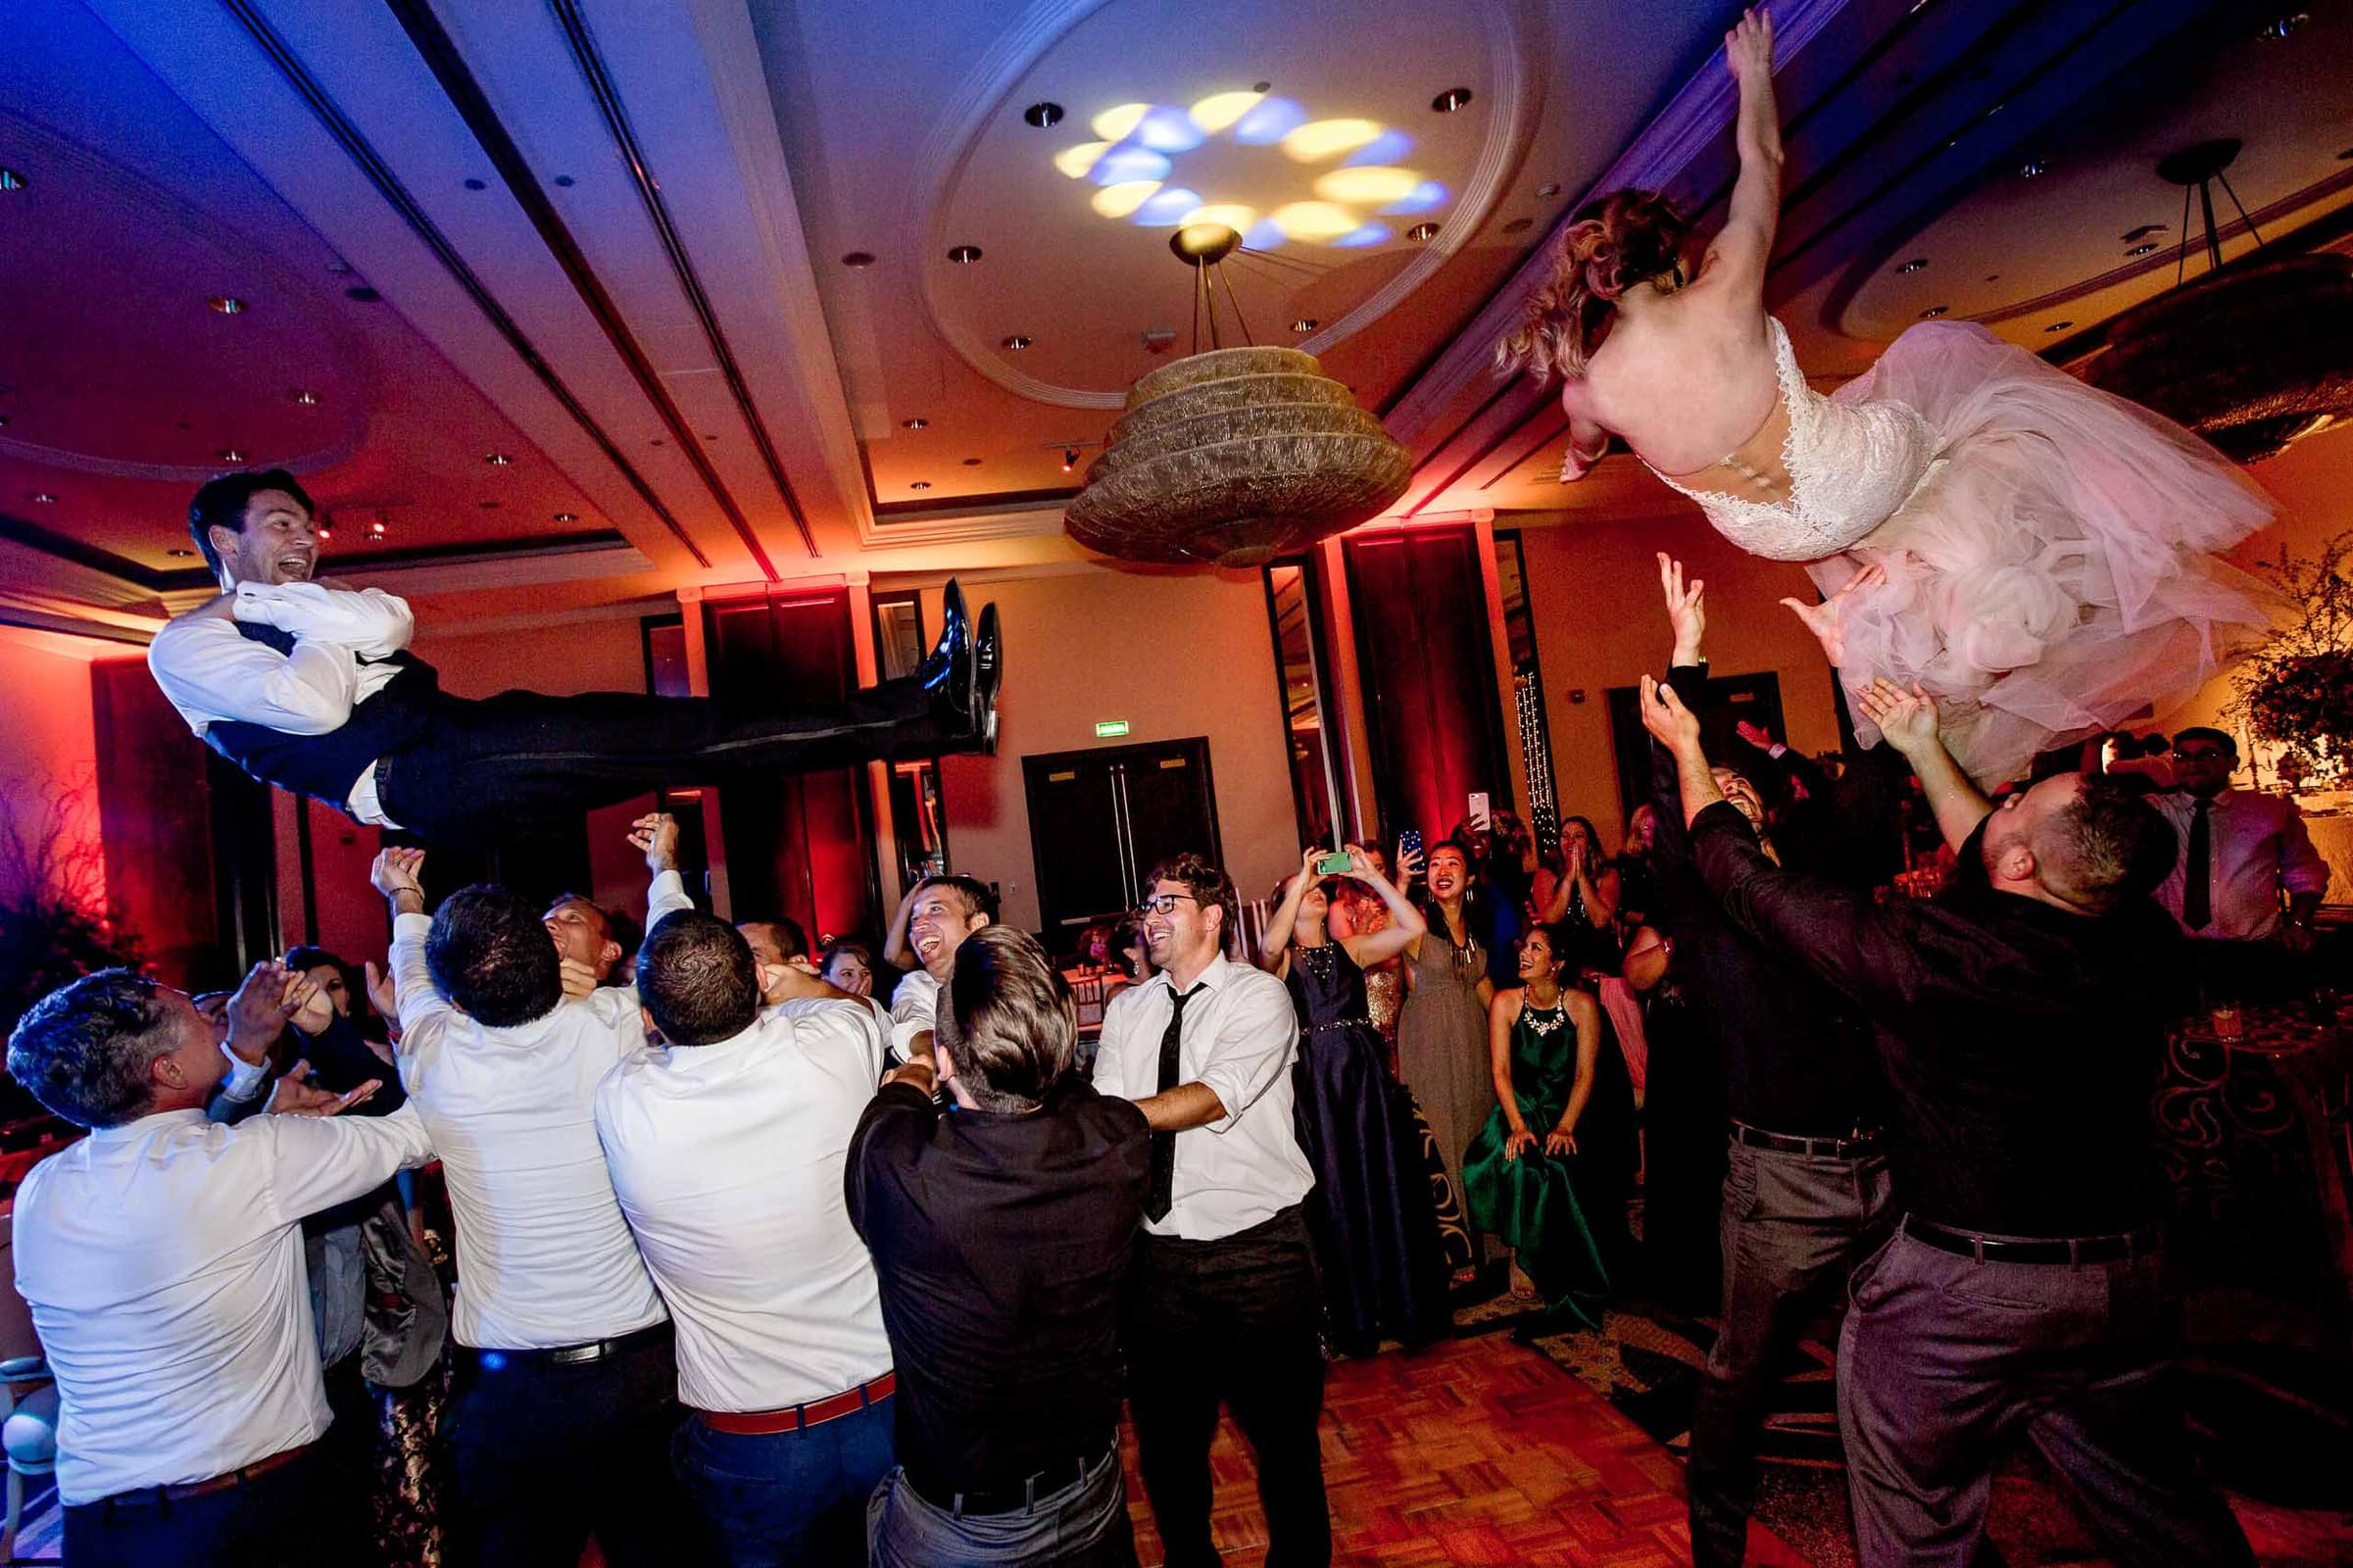 Bride and Groom flying high over their guests on the dance floor during their Lima Peru wedding.